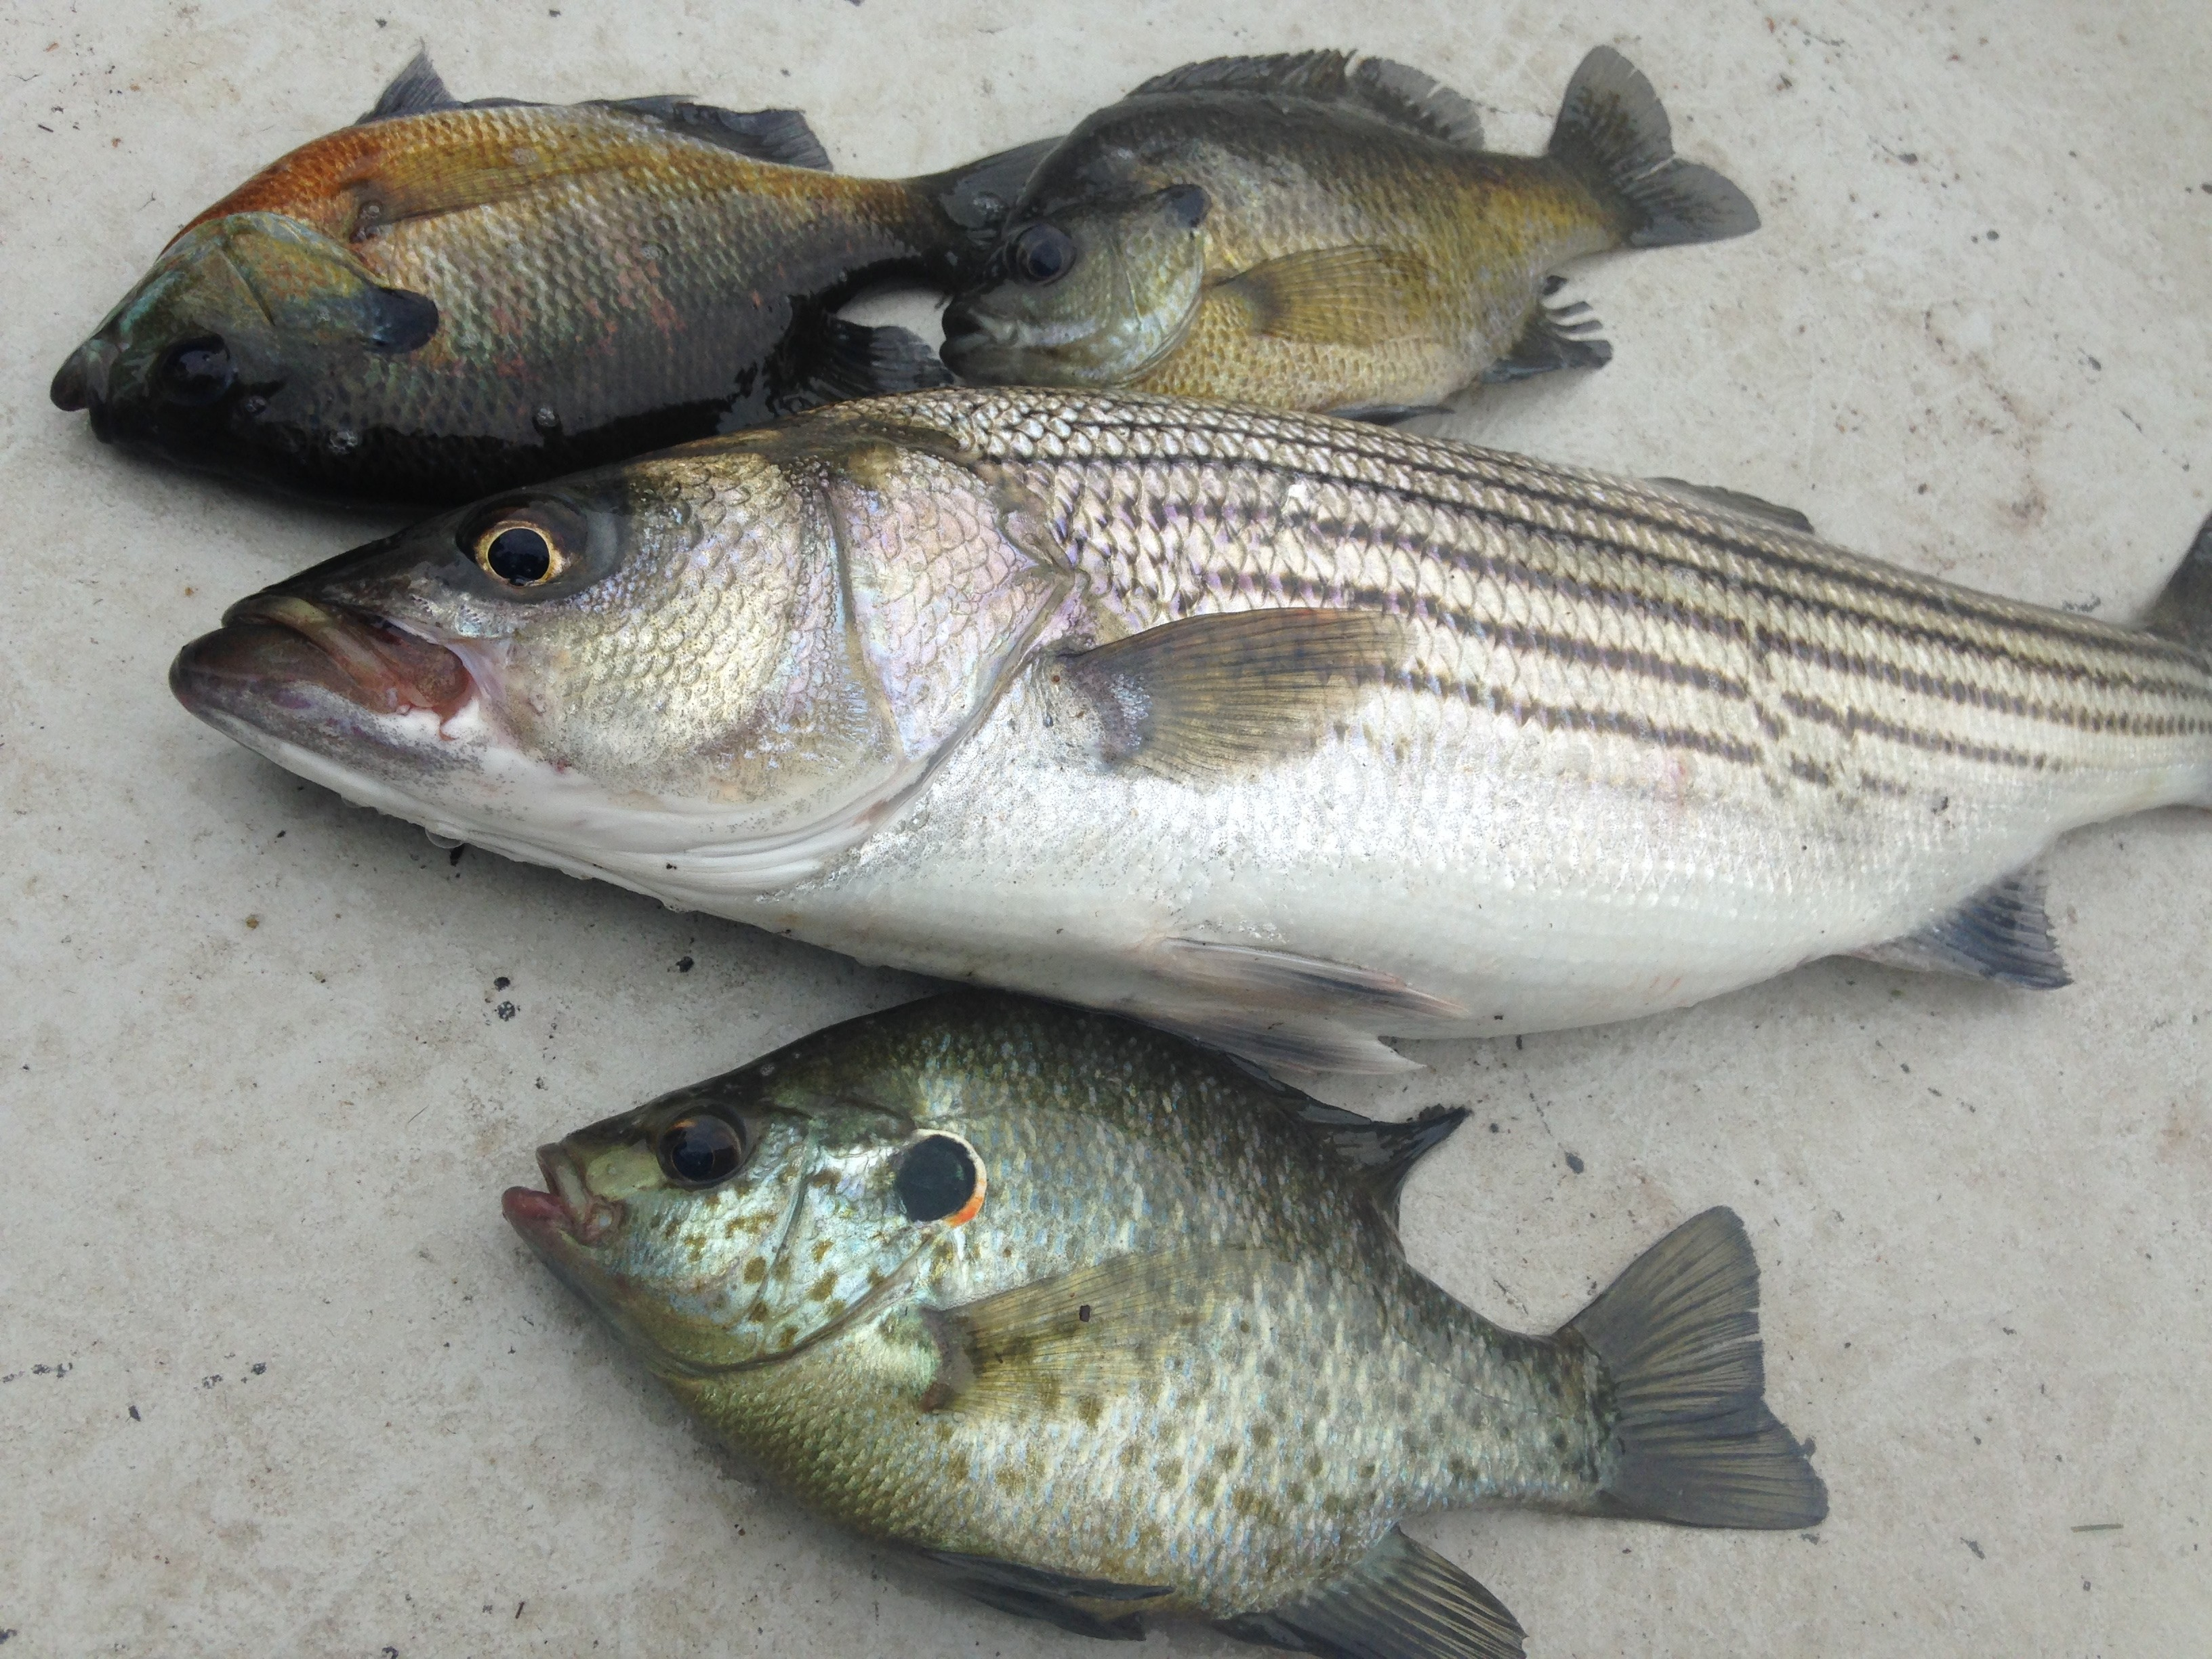 Roanoke river striped bass and more fishibx eastern nc for Striper fishing nc